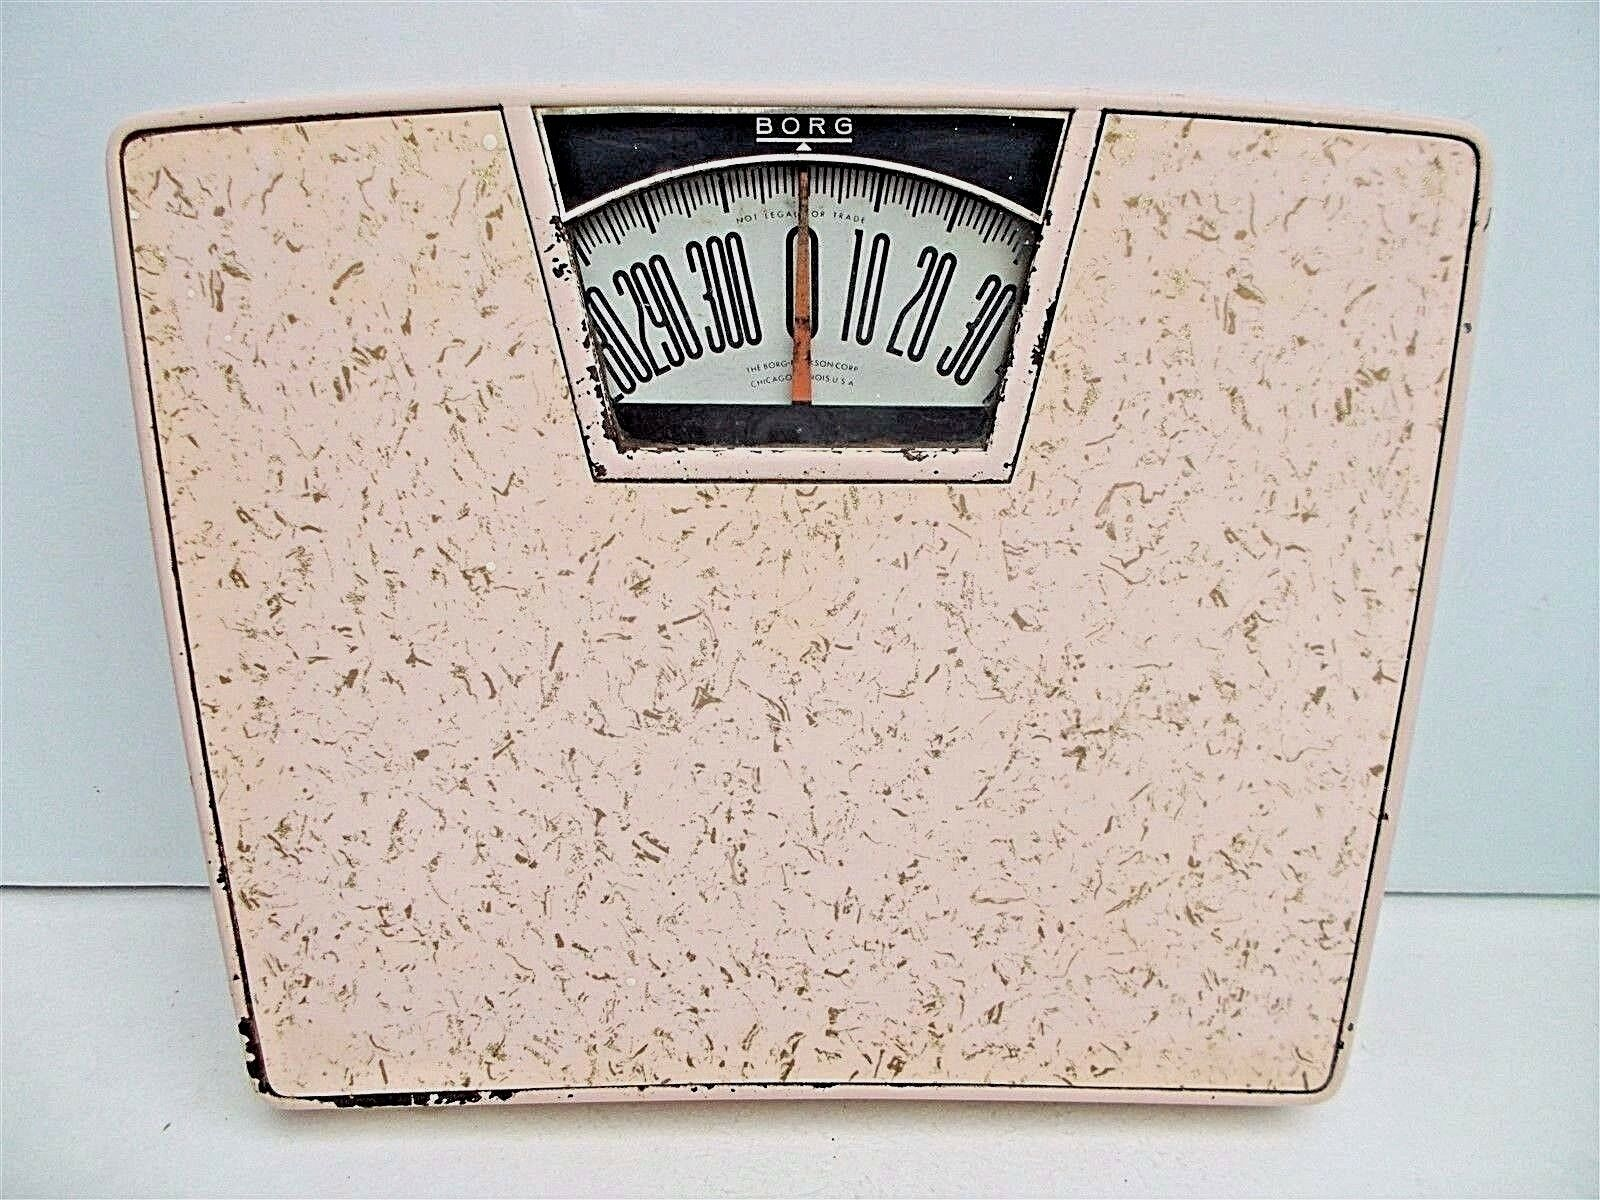 Borg bathroom scale - Vintage Light Pink Gold Flecked Bathroom Scale Borg 1950s 60s Mid Century Modern 30 34 Vintage Light Pink Gold Flecked Bathroom Scale Borg 1950s 60s Mid